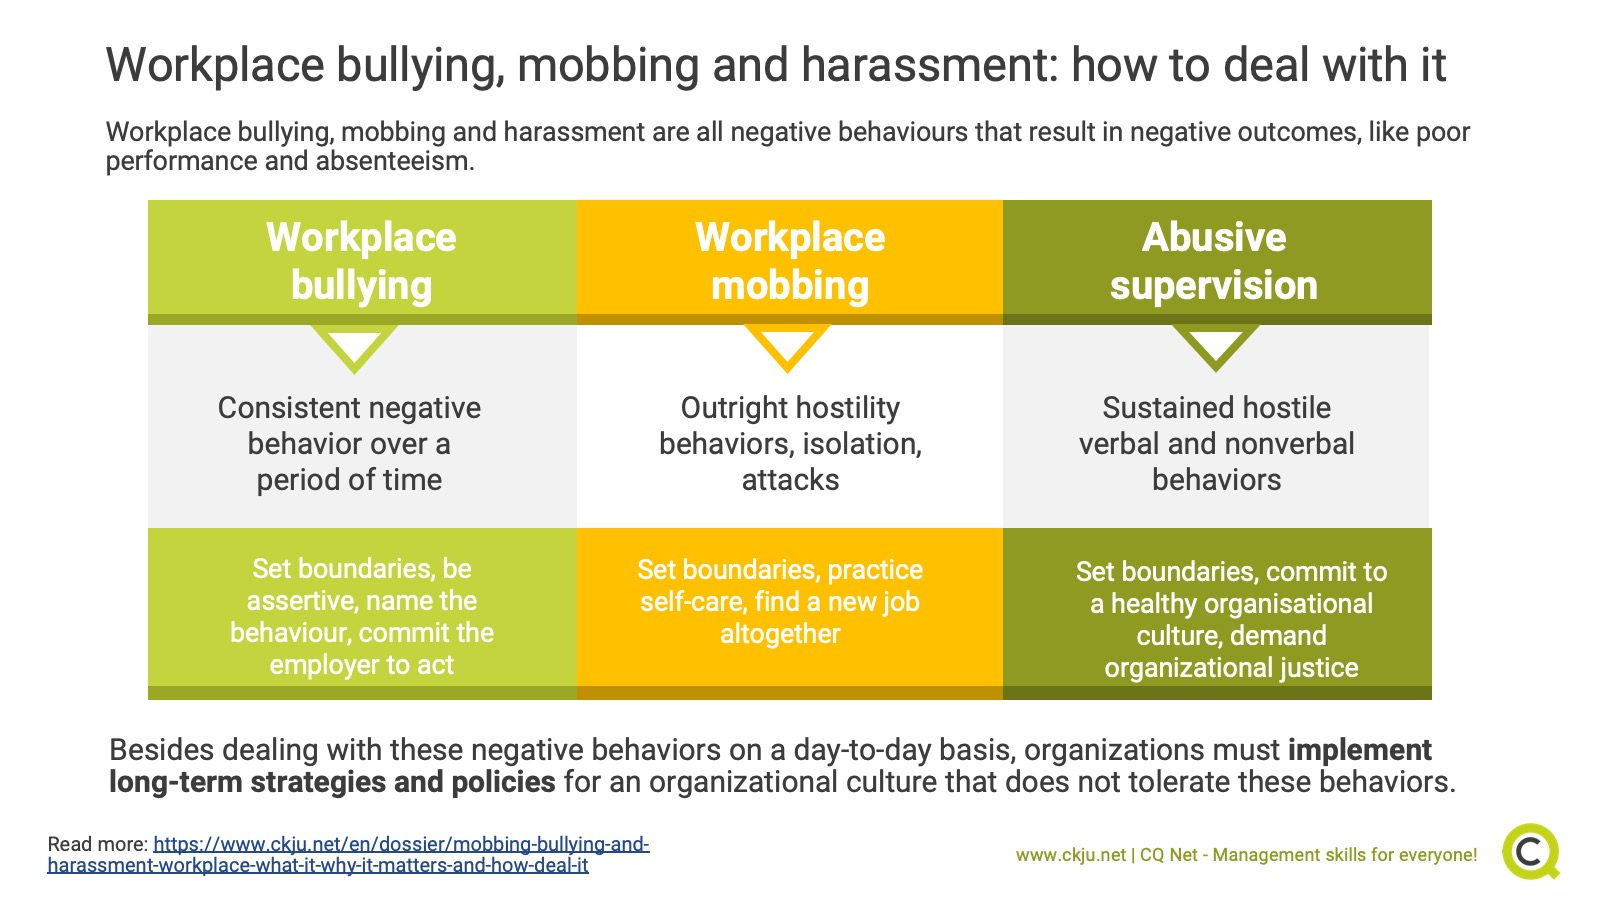 Bullying, mobbing and harassment at the workplace